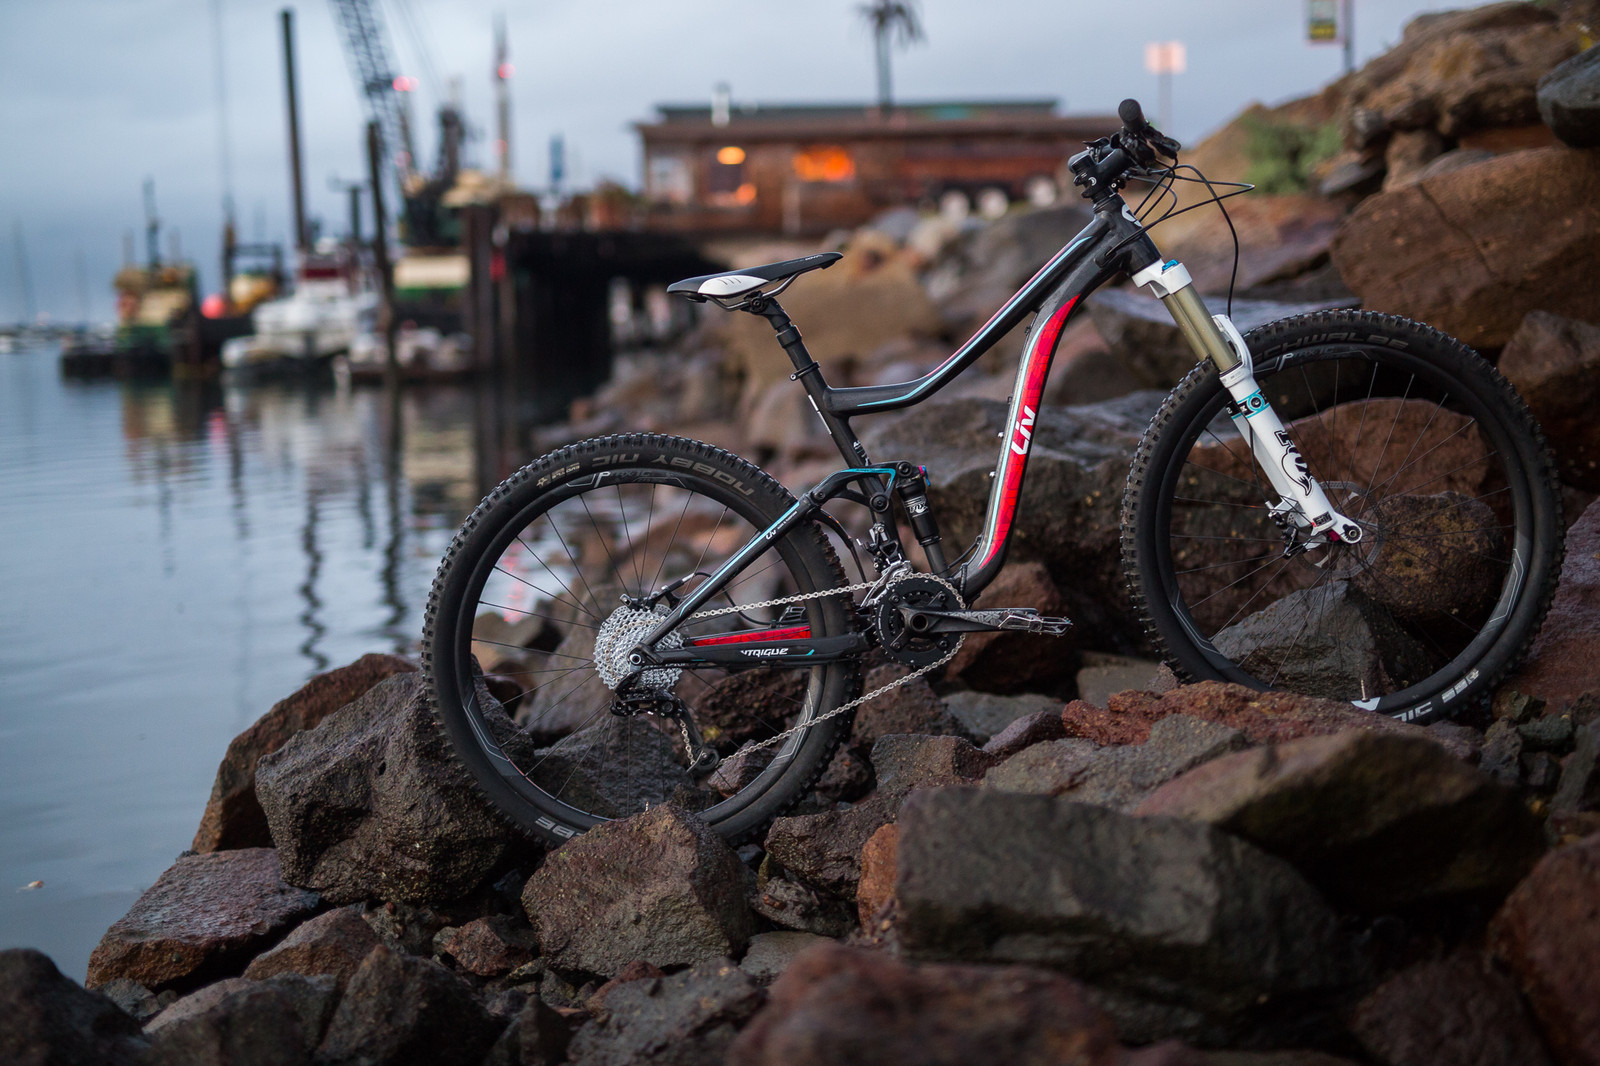 2015 Liv Giant Intrigue 1 - 19 Bikes Tested - 2015 Vital MTB Test Sessions - Mountain Biking Pictures - Vital MTB